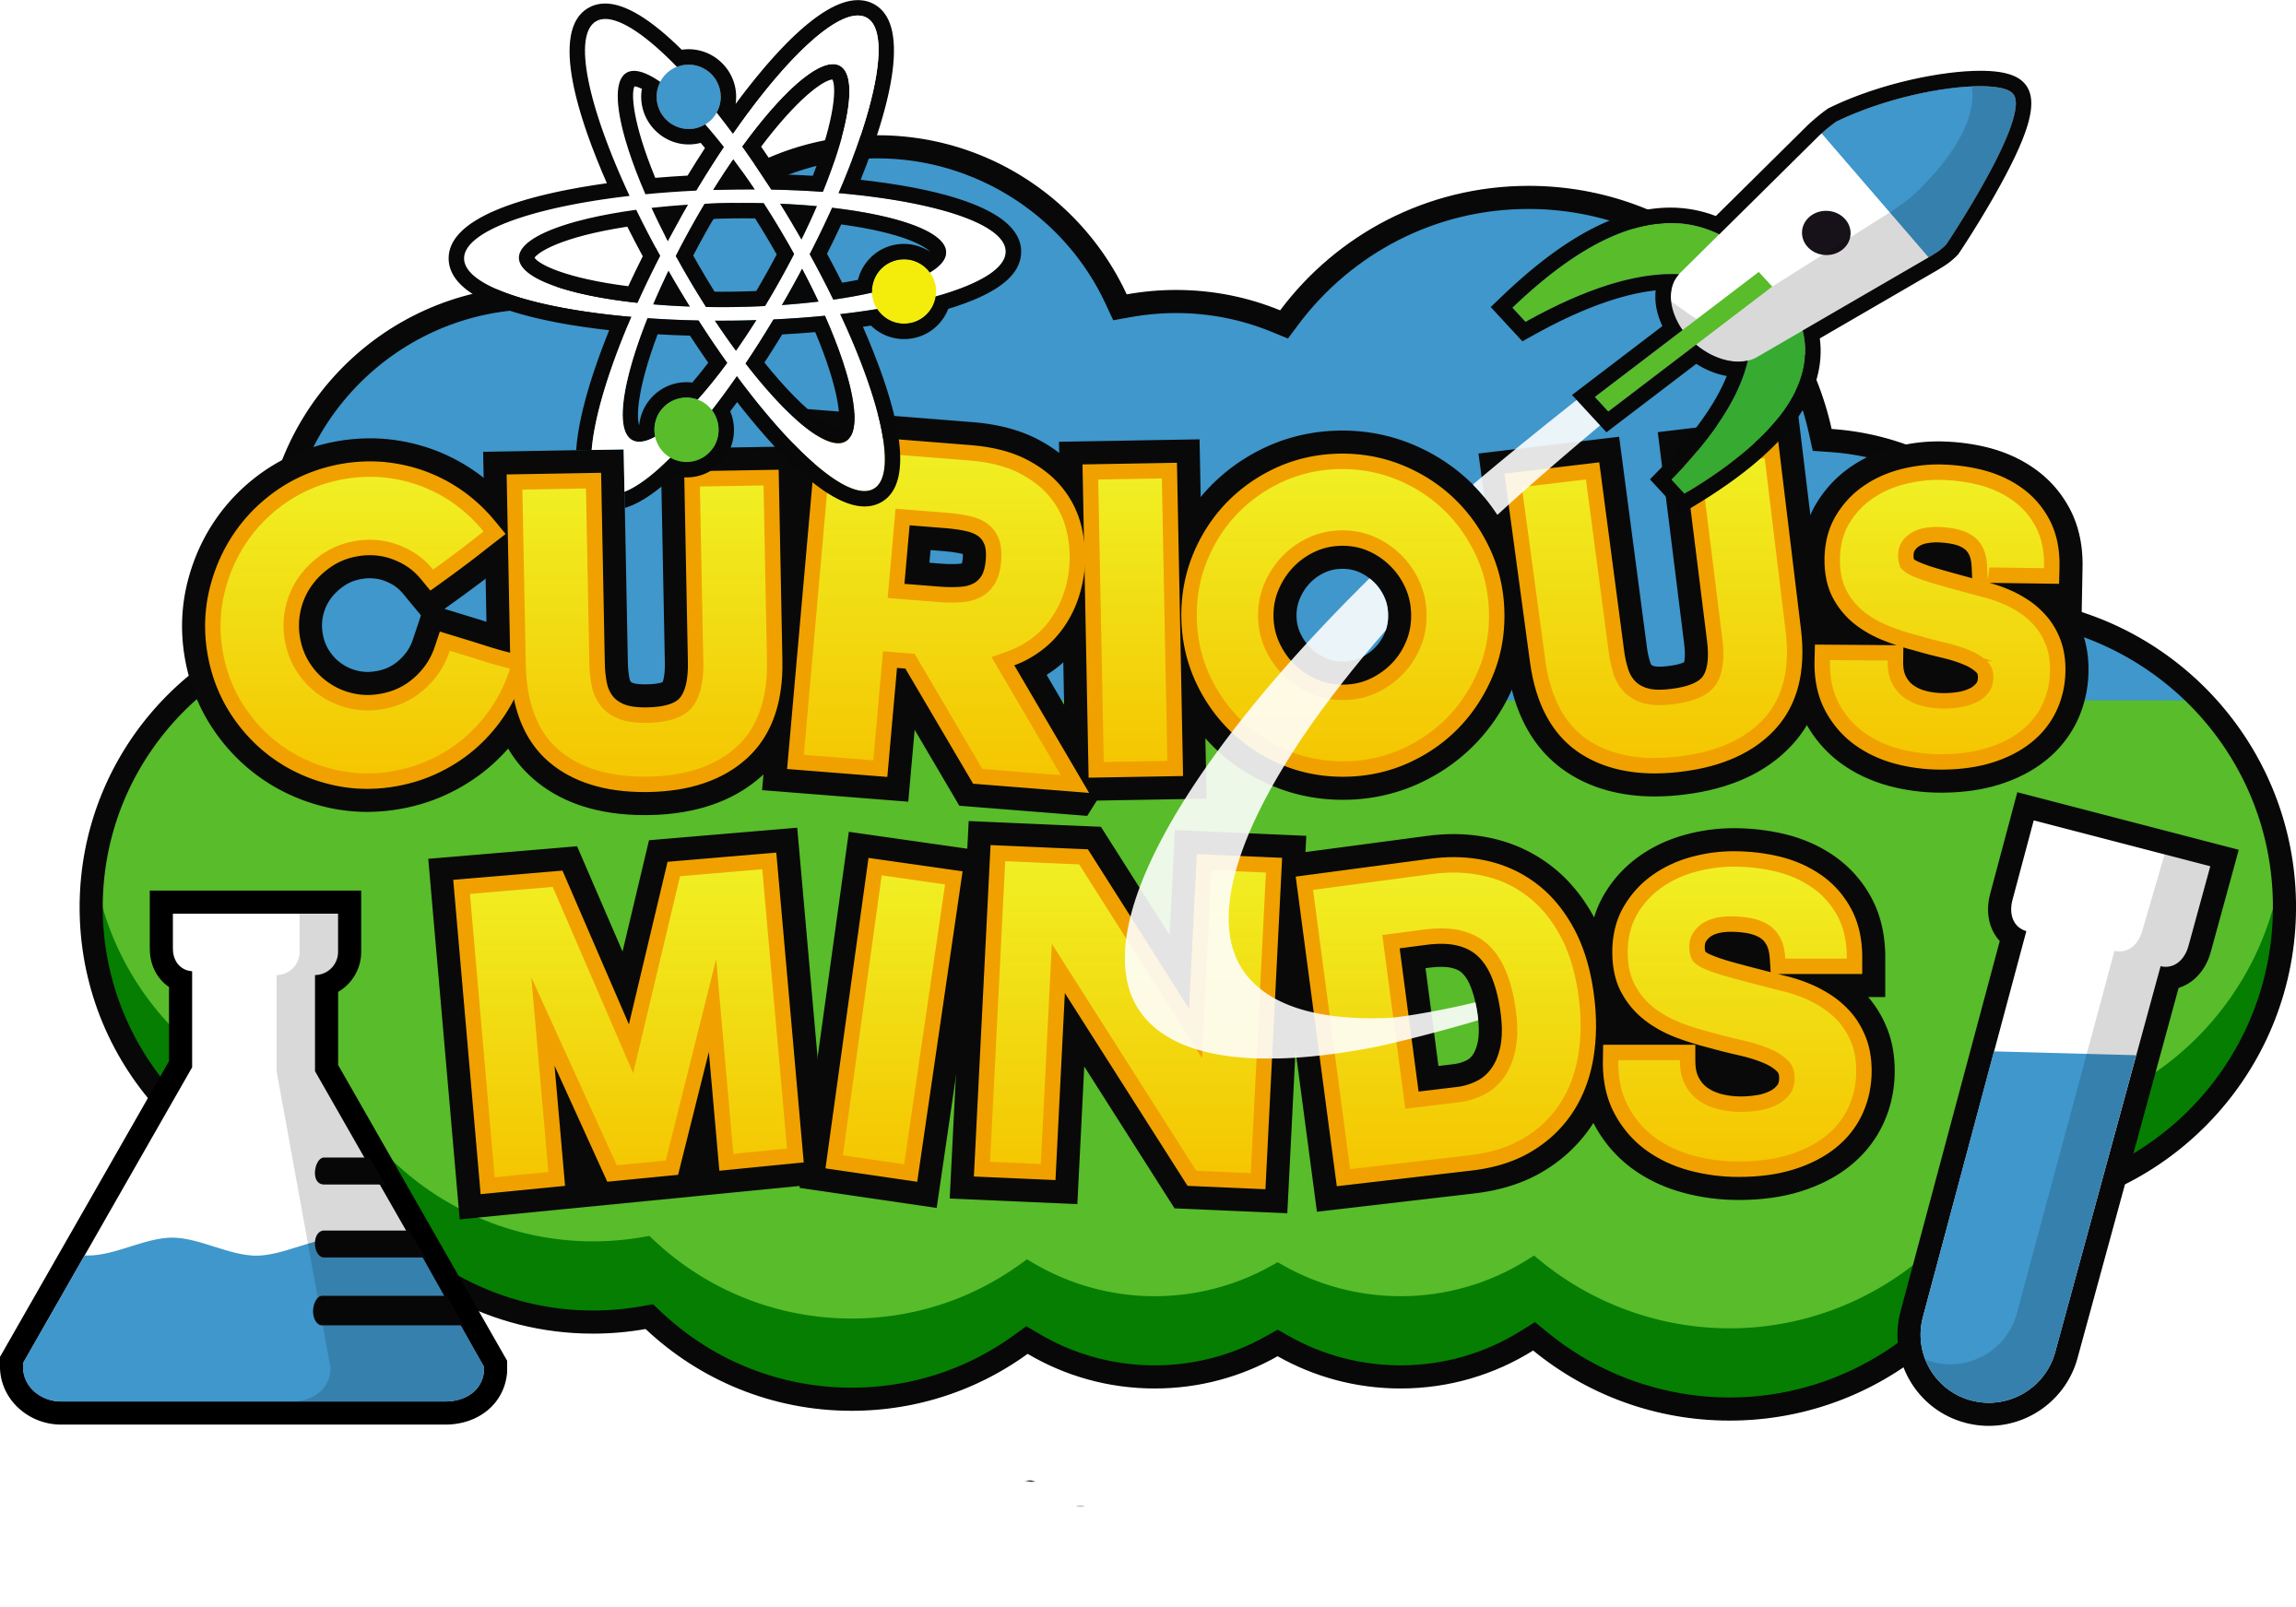 CuriousMinds.co.uk